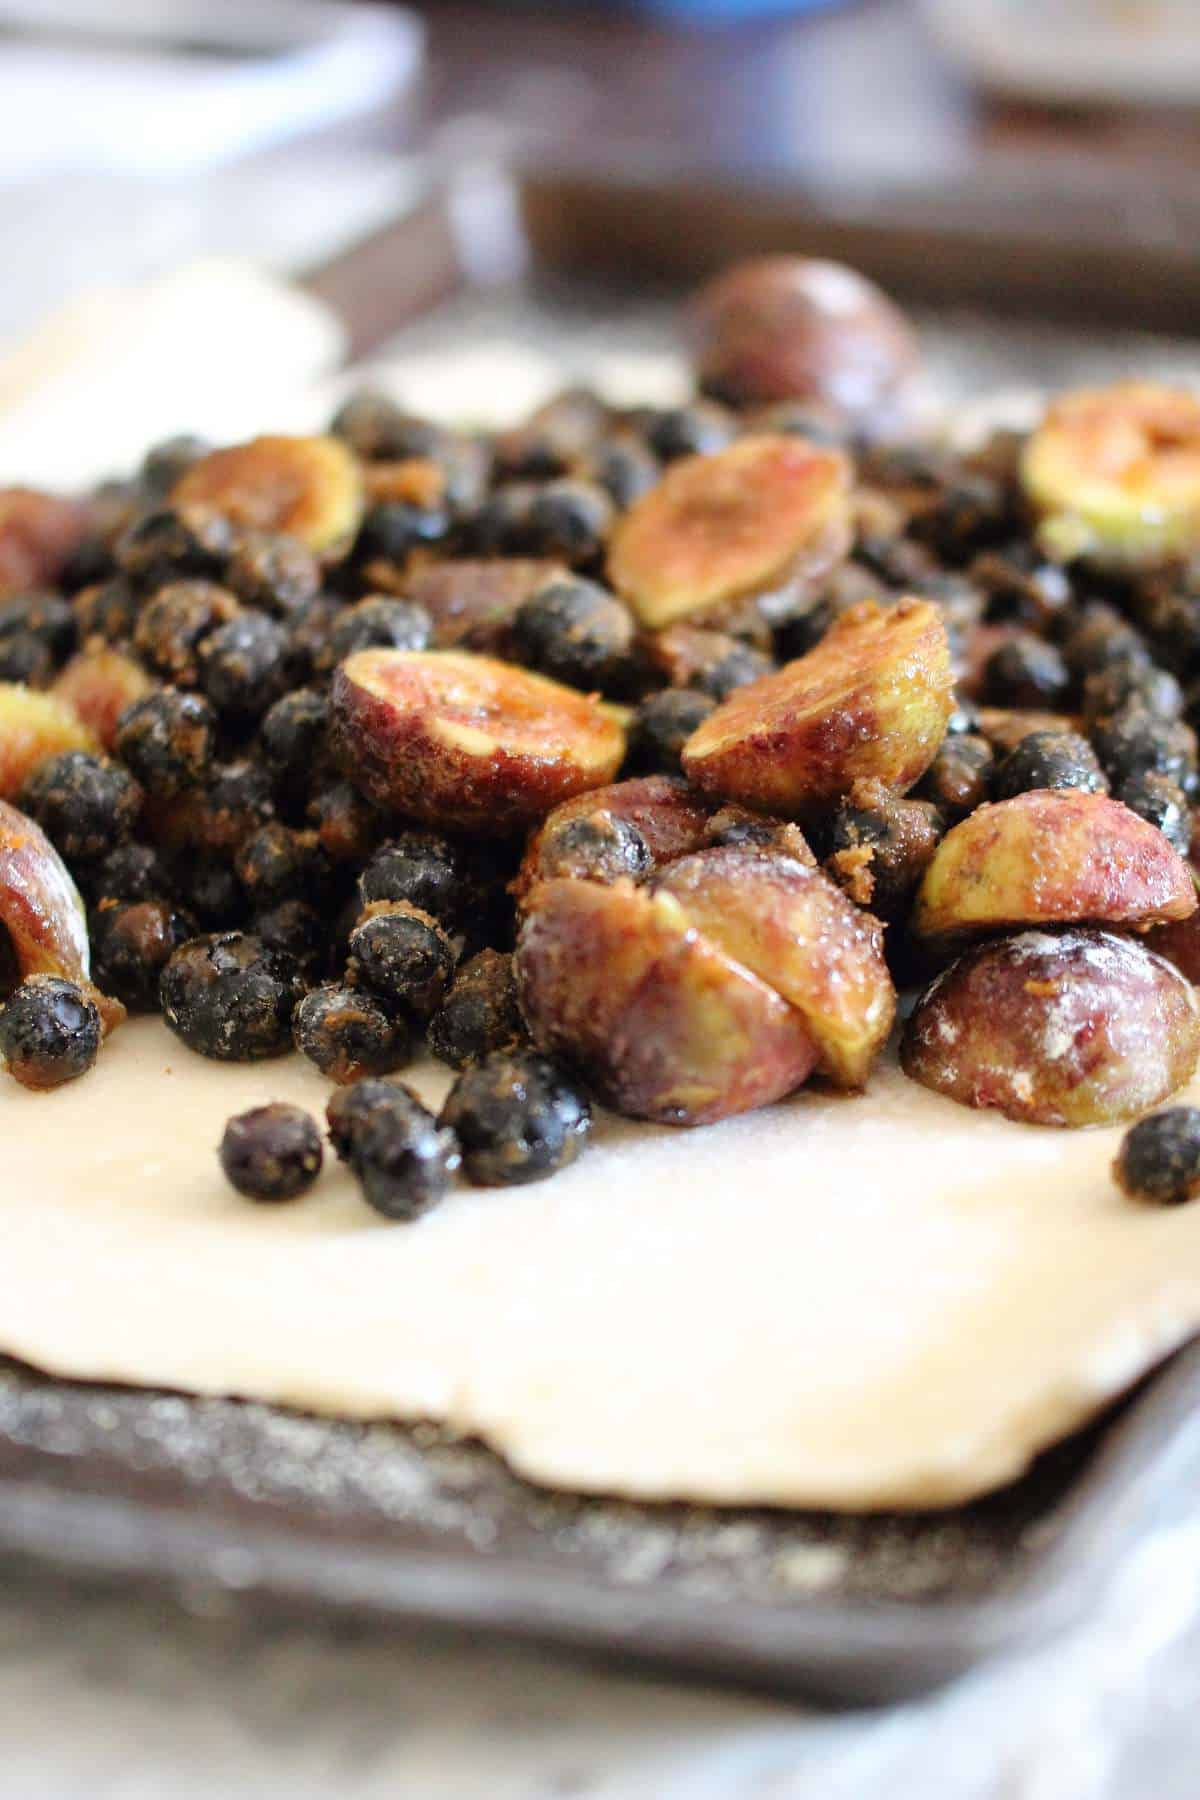 The moral of this post is simple, figs are cheap and awesome to cook ...